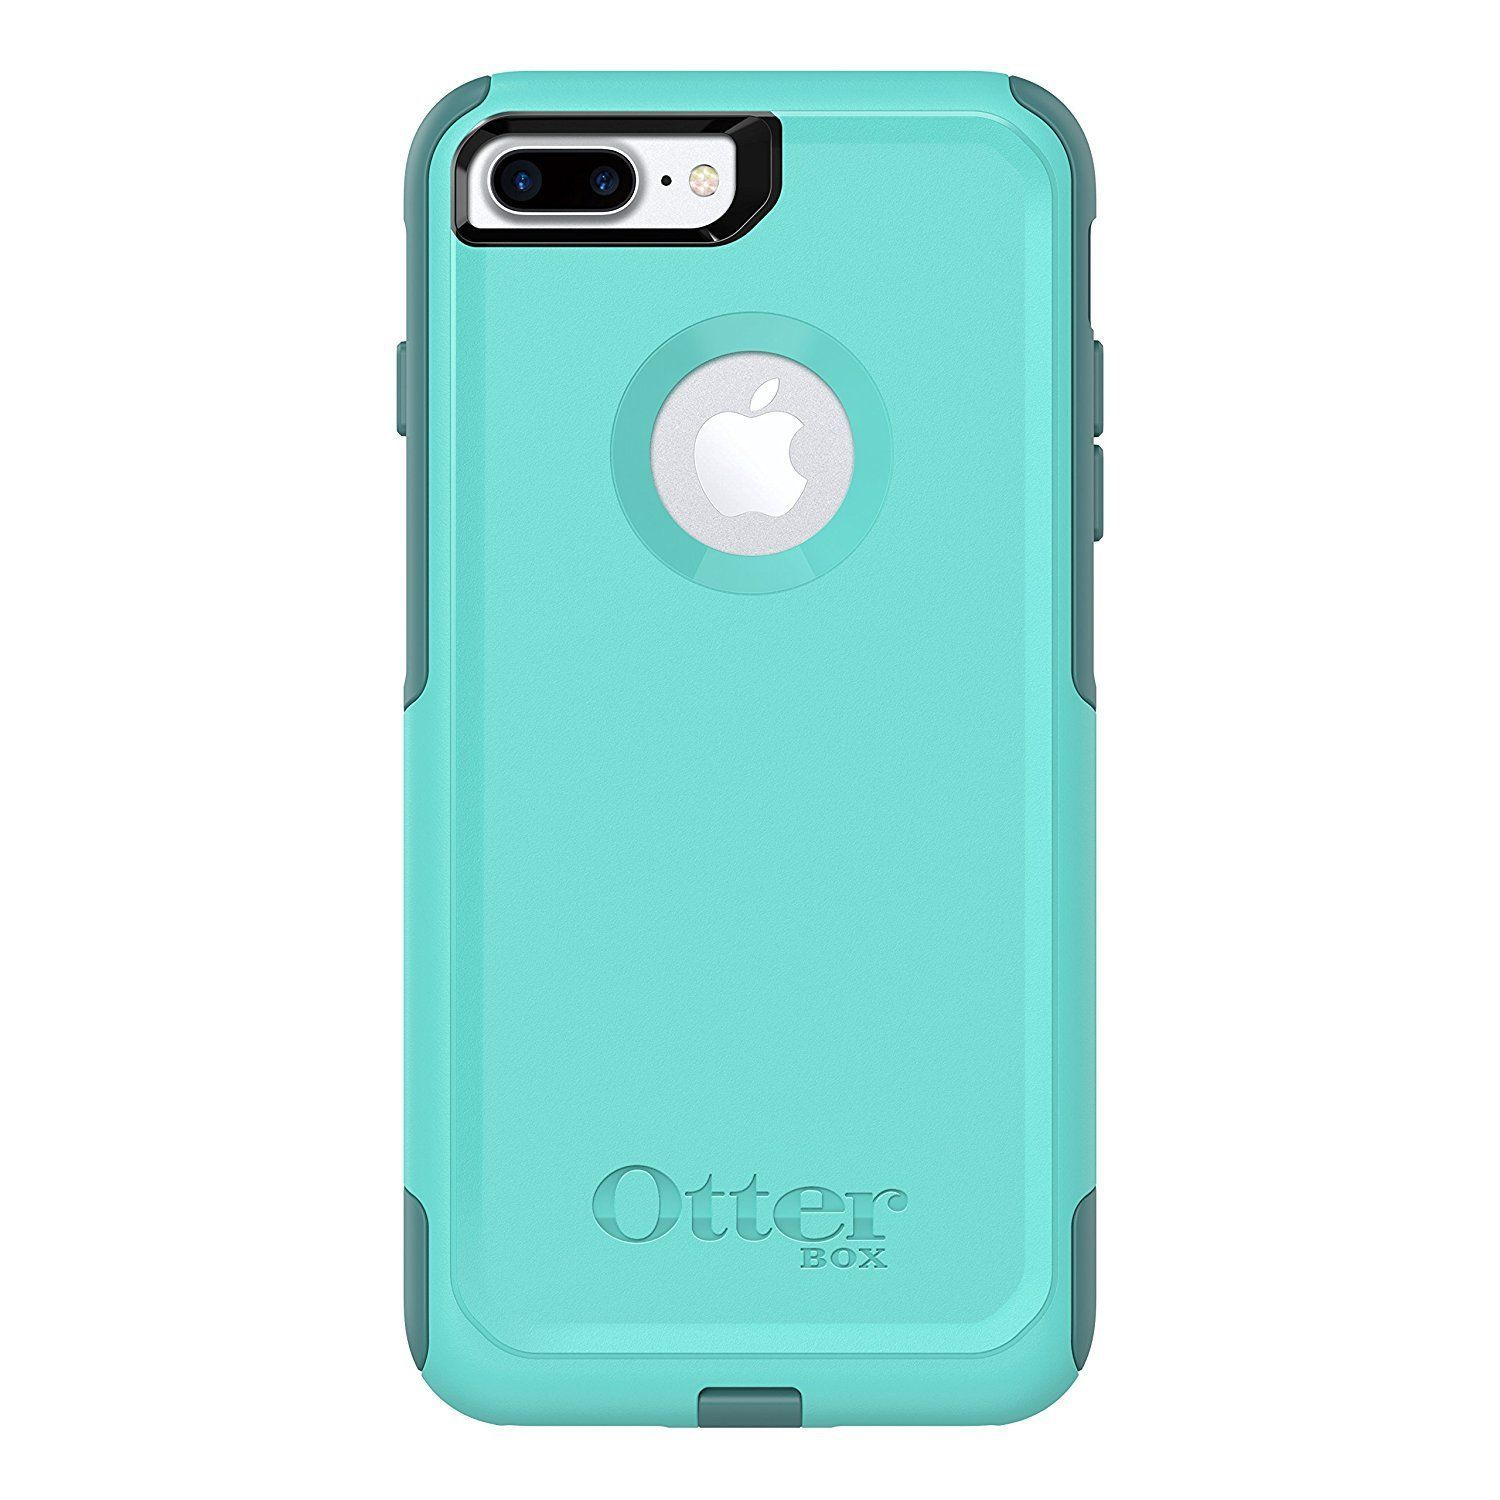 Otterbox Commuter Series Case For Iphone 8 Plus Iphone 7 Plus Aqua Mint Green Otterbox Phone Cases Otterbox Commuter Case Otterbox Iphone